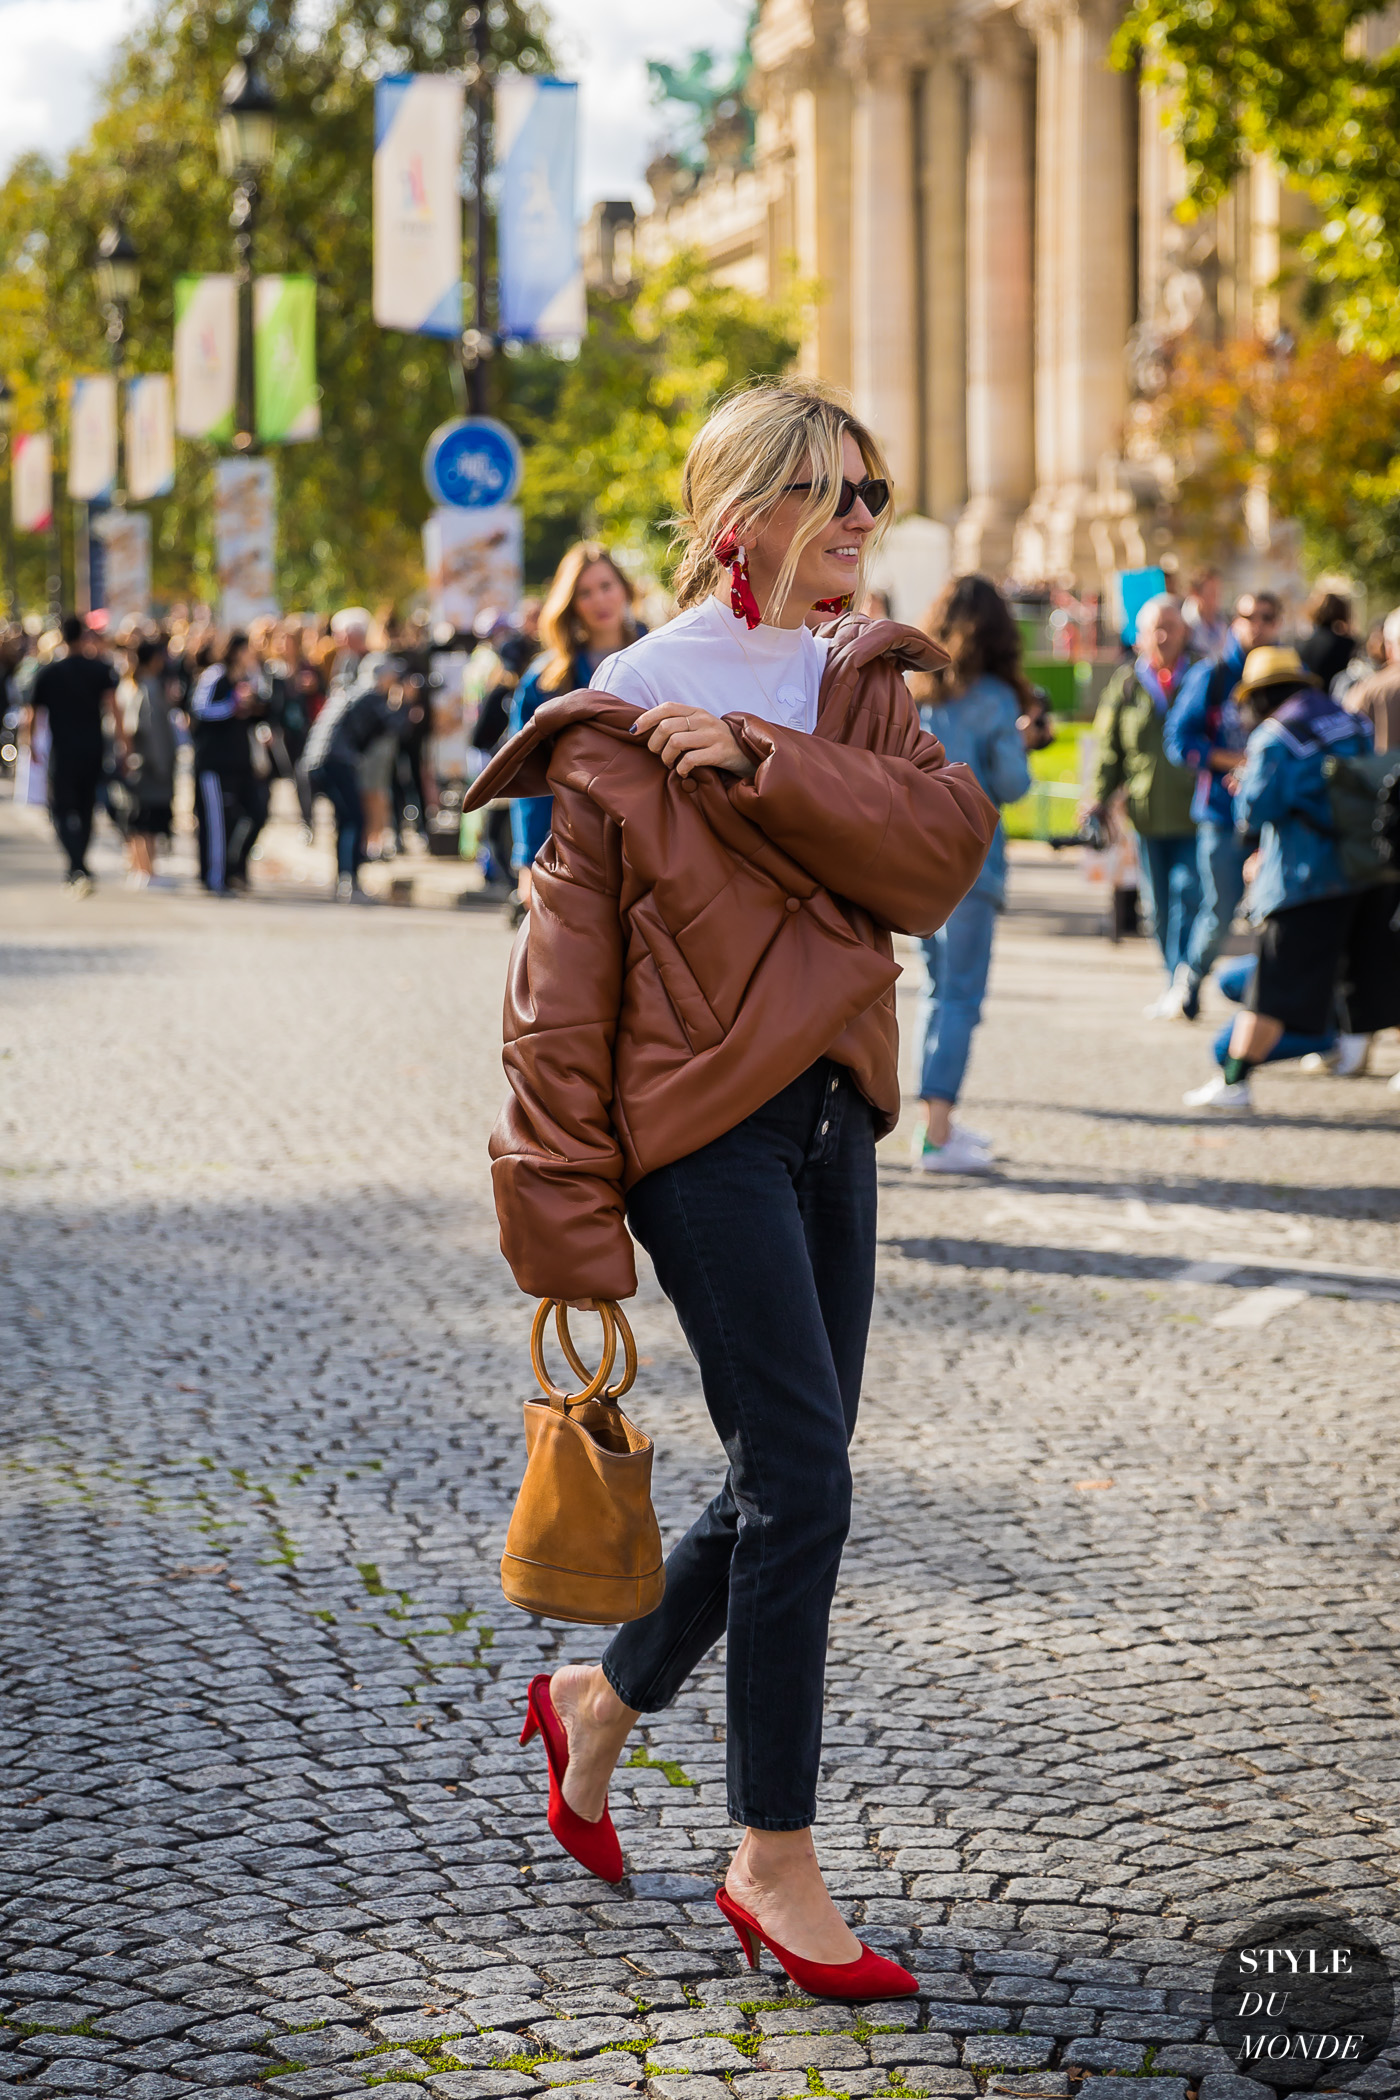 Camille Charriere by STYLEDUMONDE Street Style Fashion Photography_48A3105